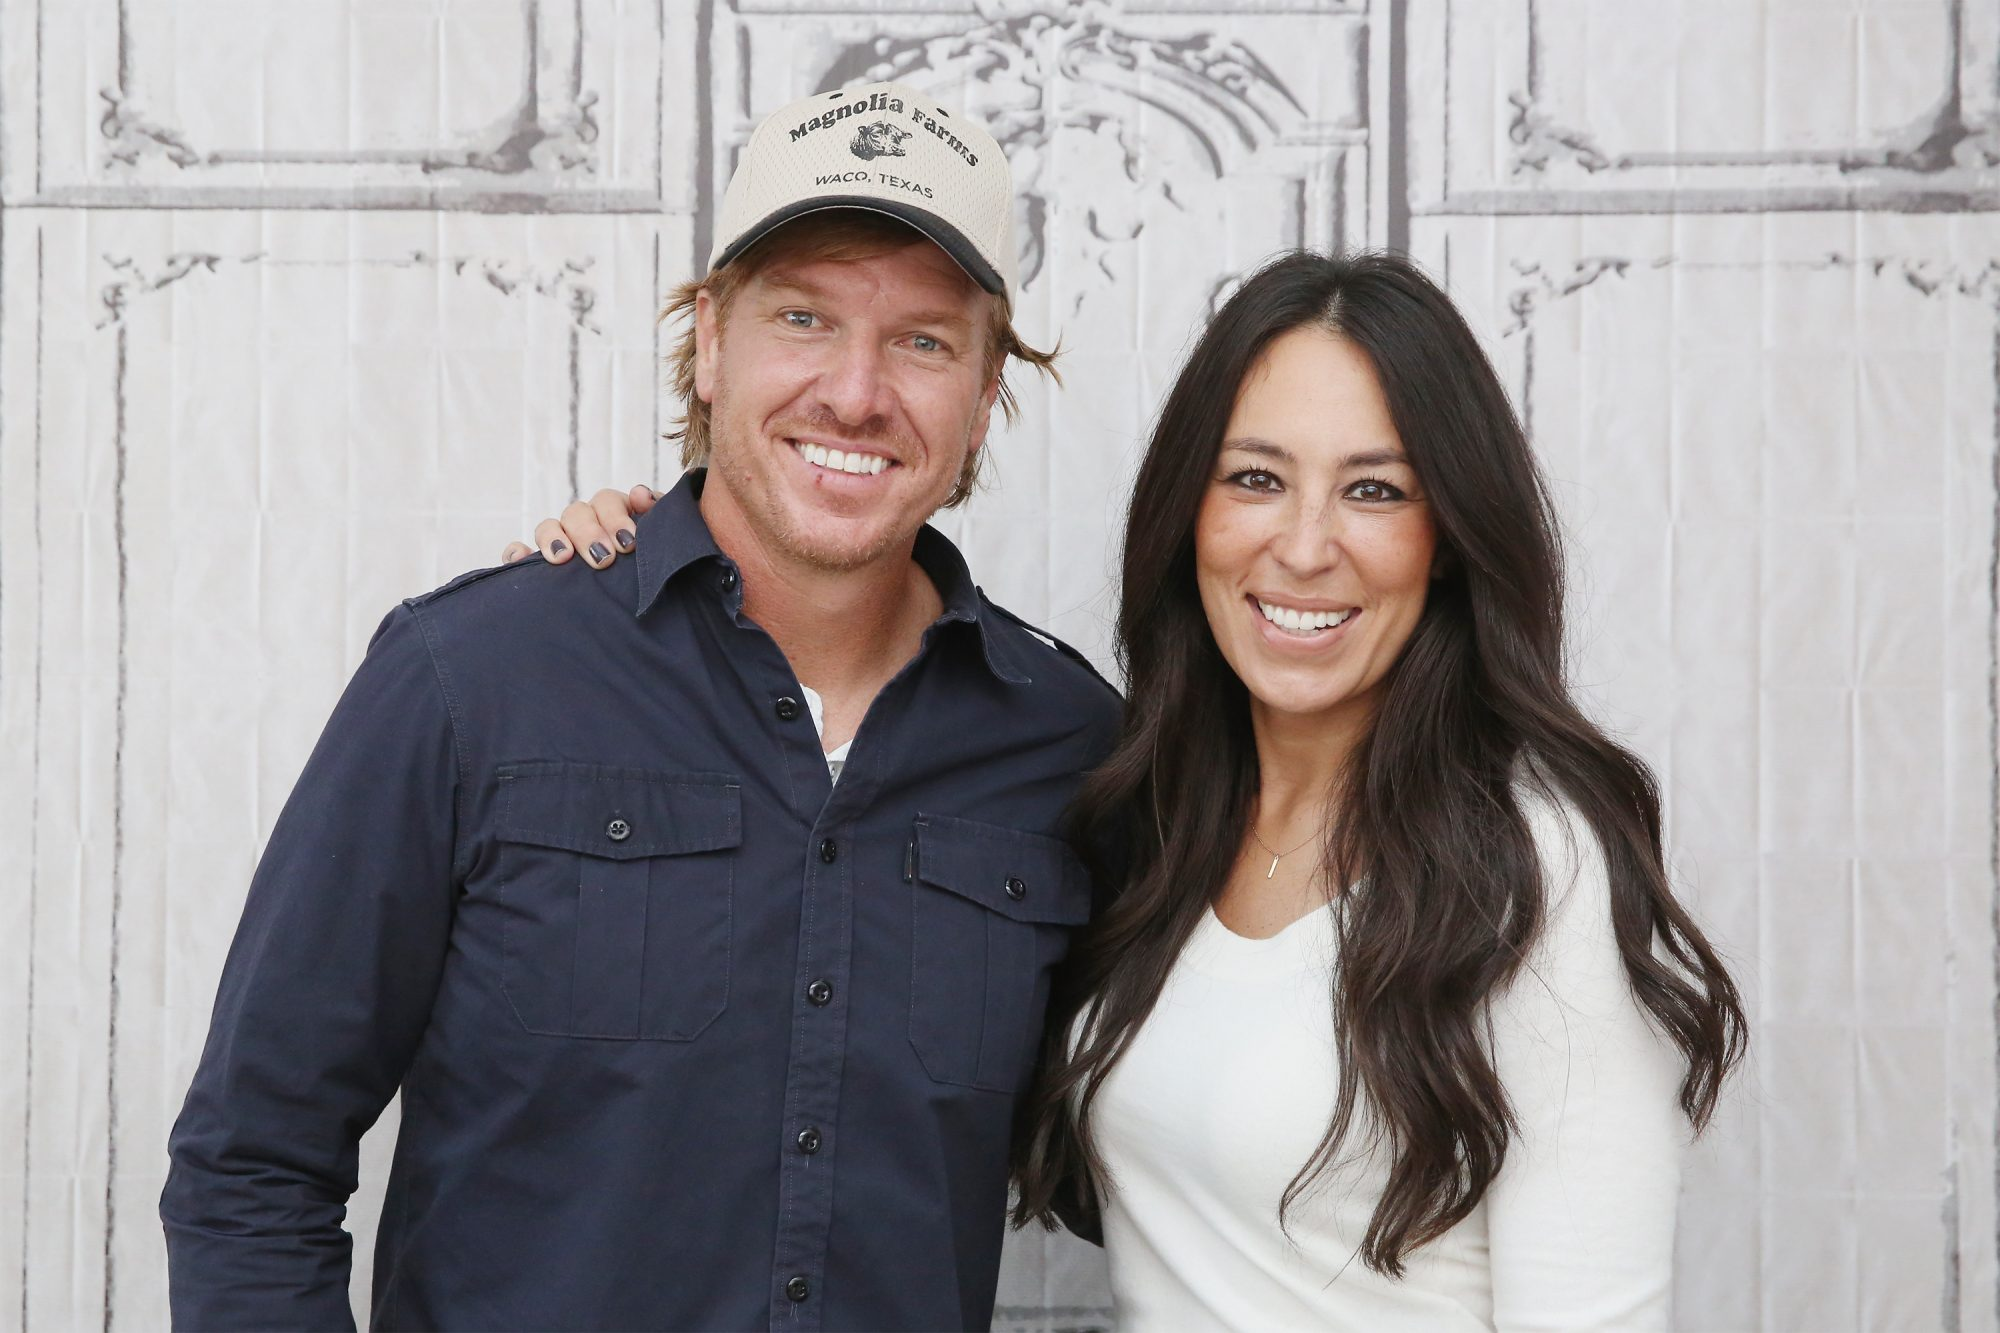 The Build Series presents Chip Gaines and Joanna Gaines to discuss their new book 'The Magnolia Story' at AOL HQ on October 19, 2016 in New York City.